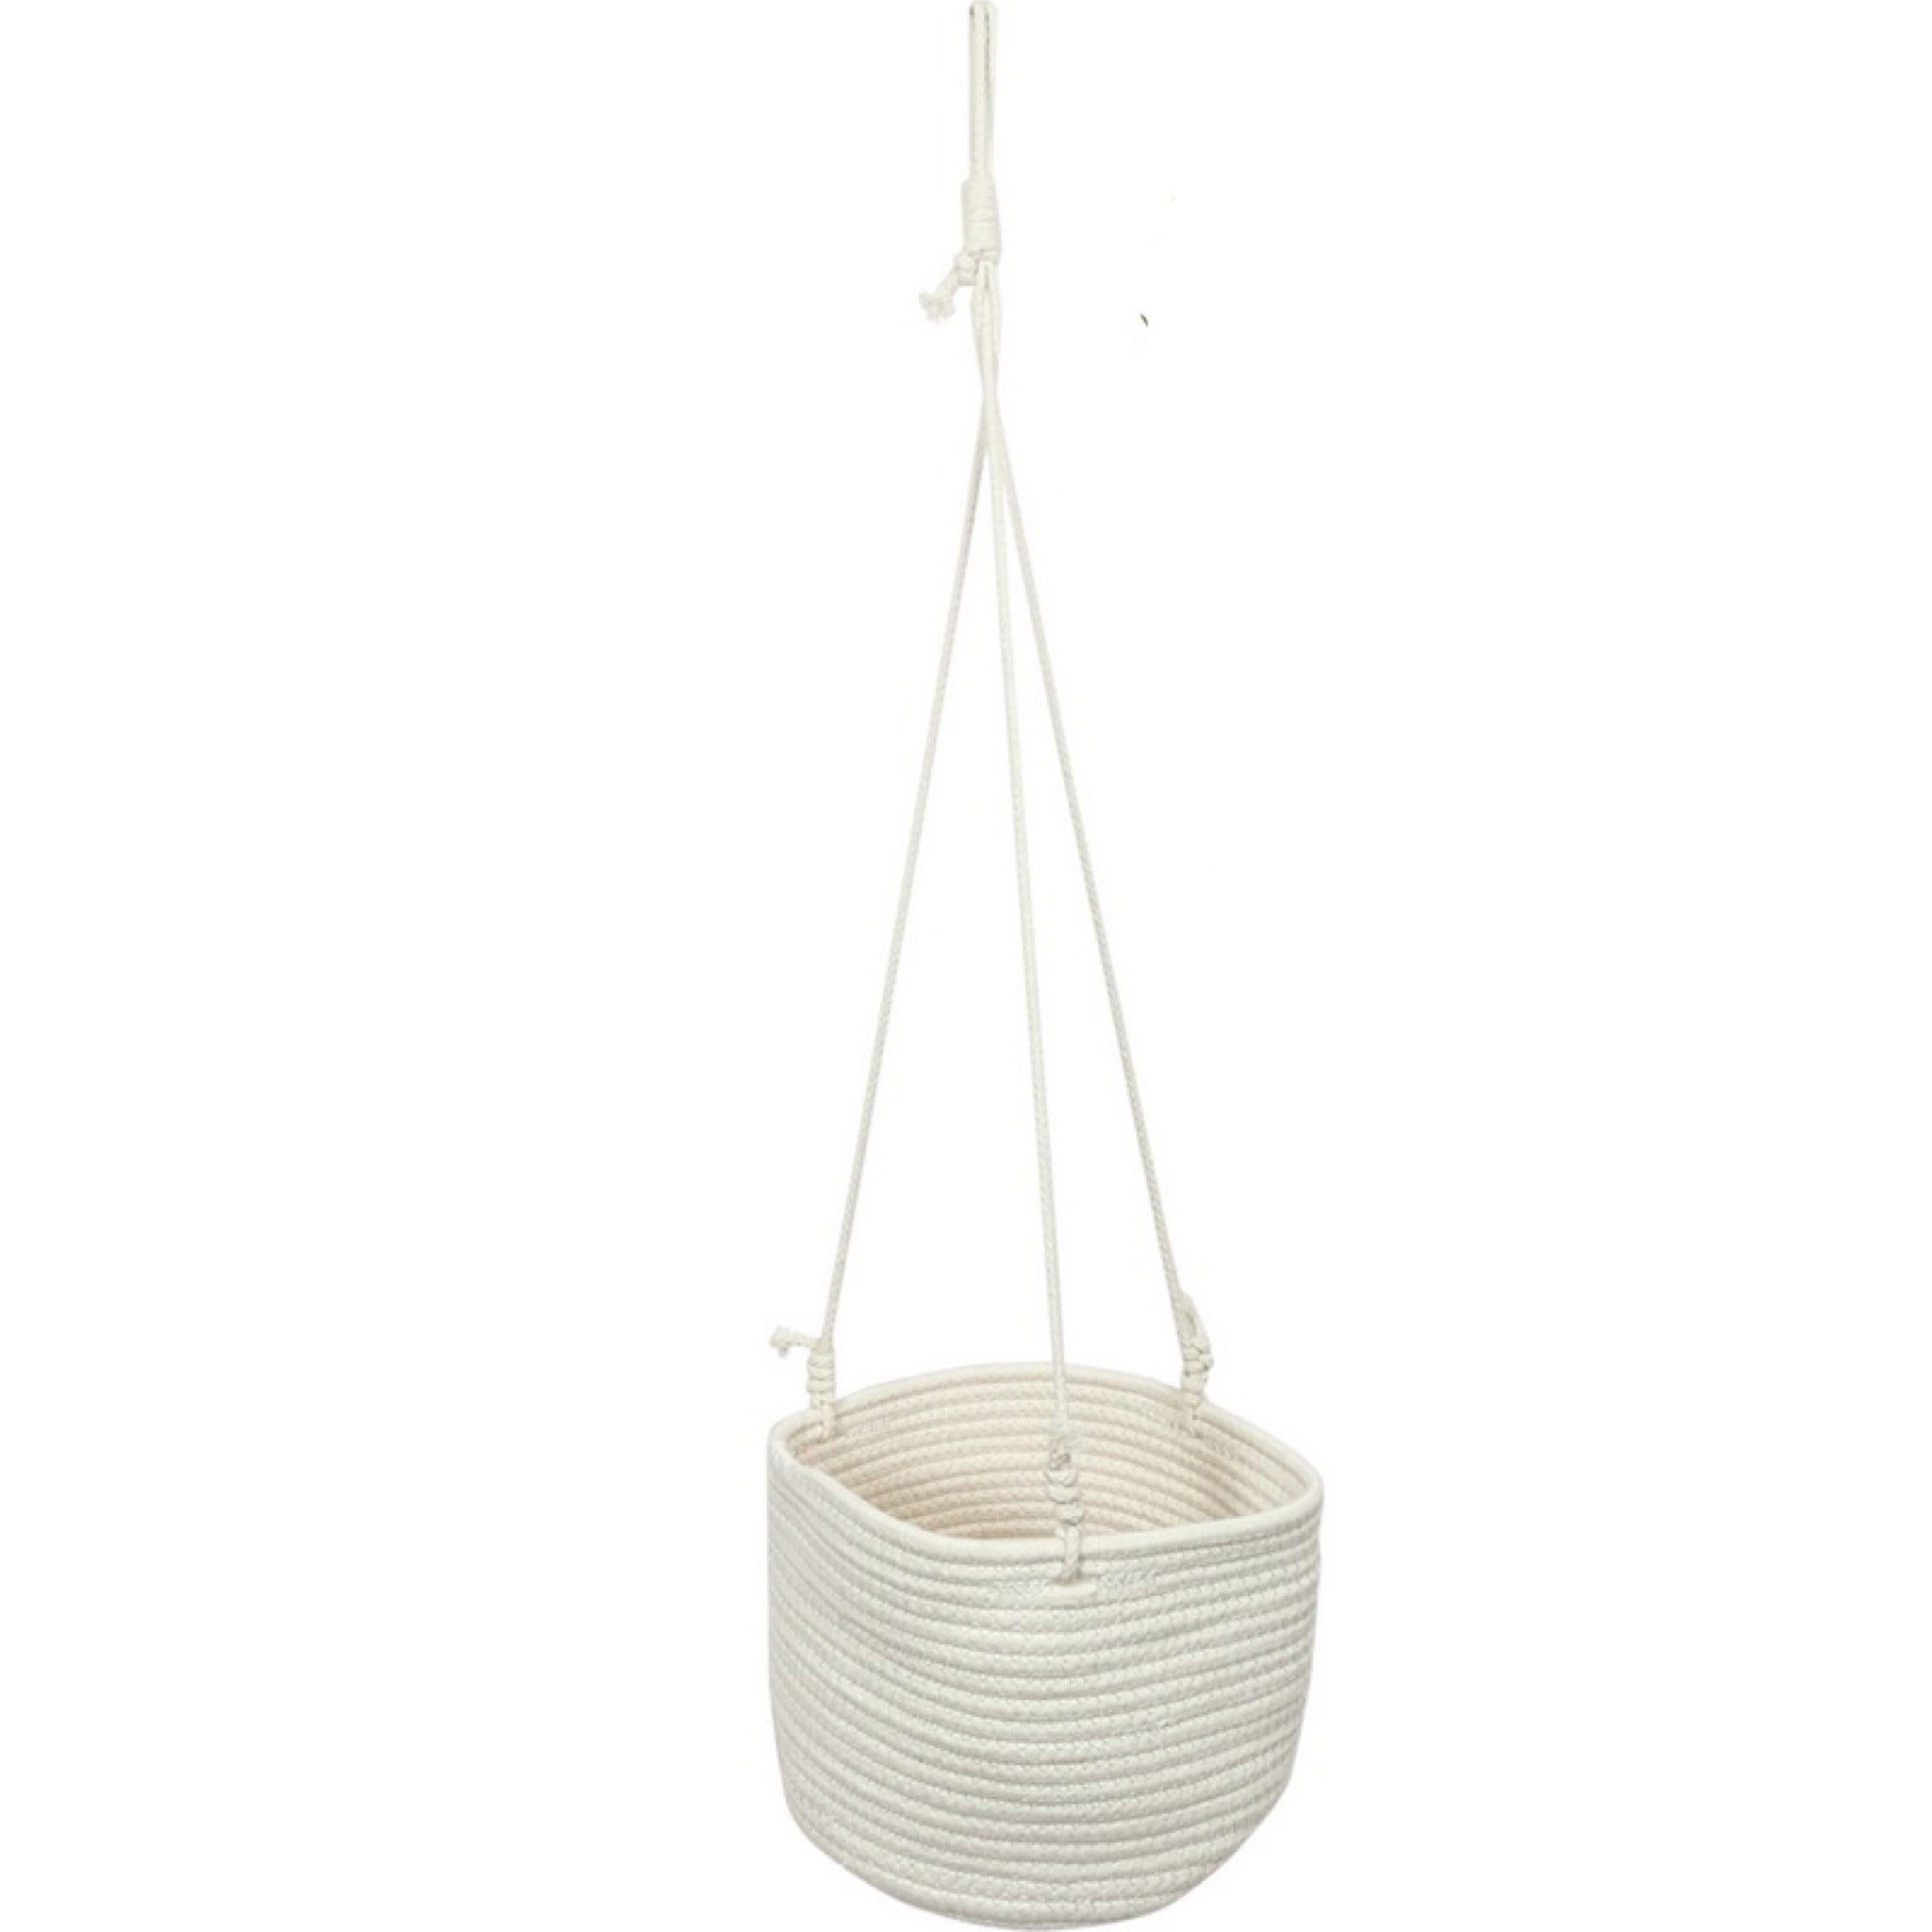 Pot Hanging Garden Plant White Basket